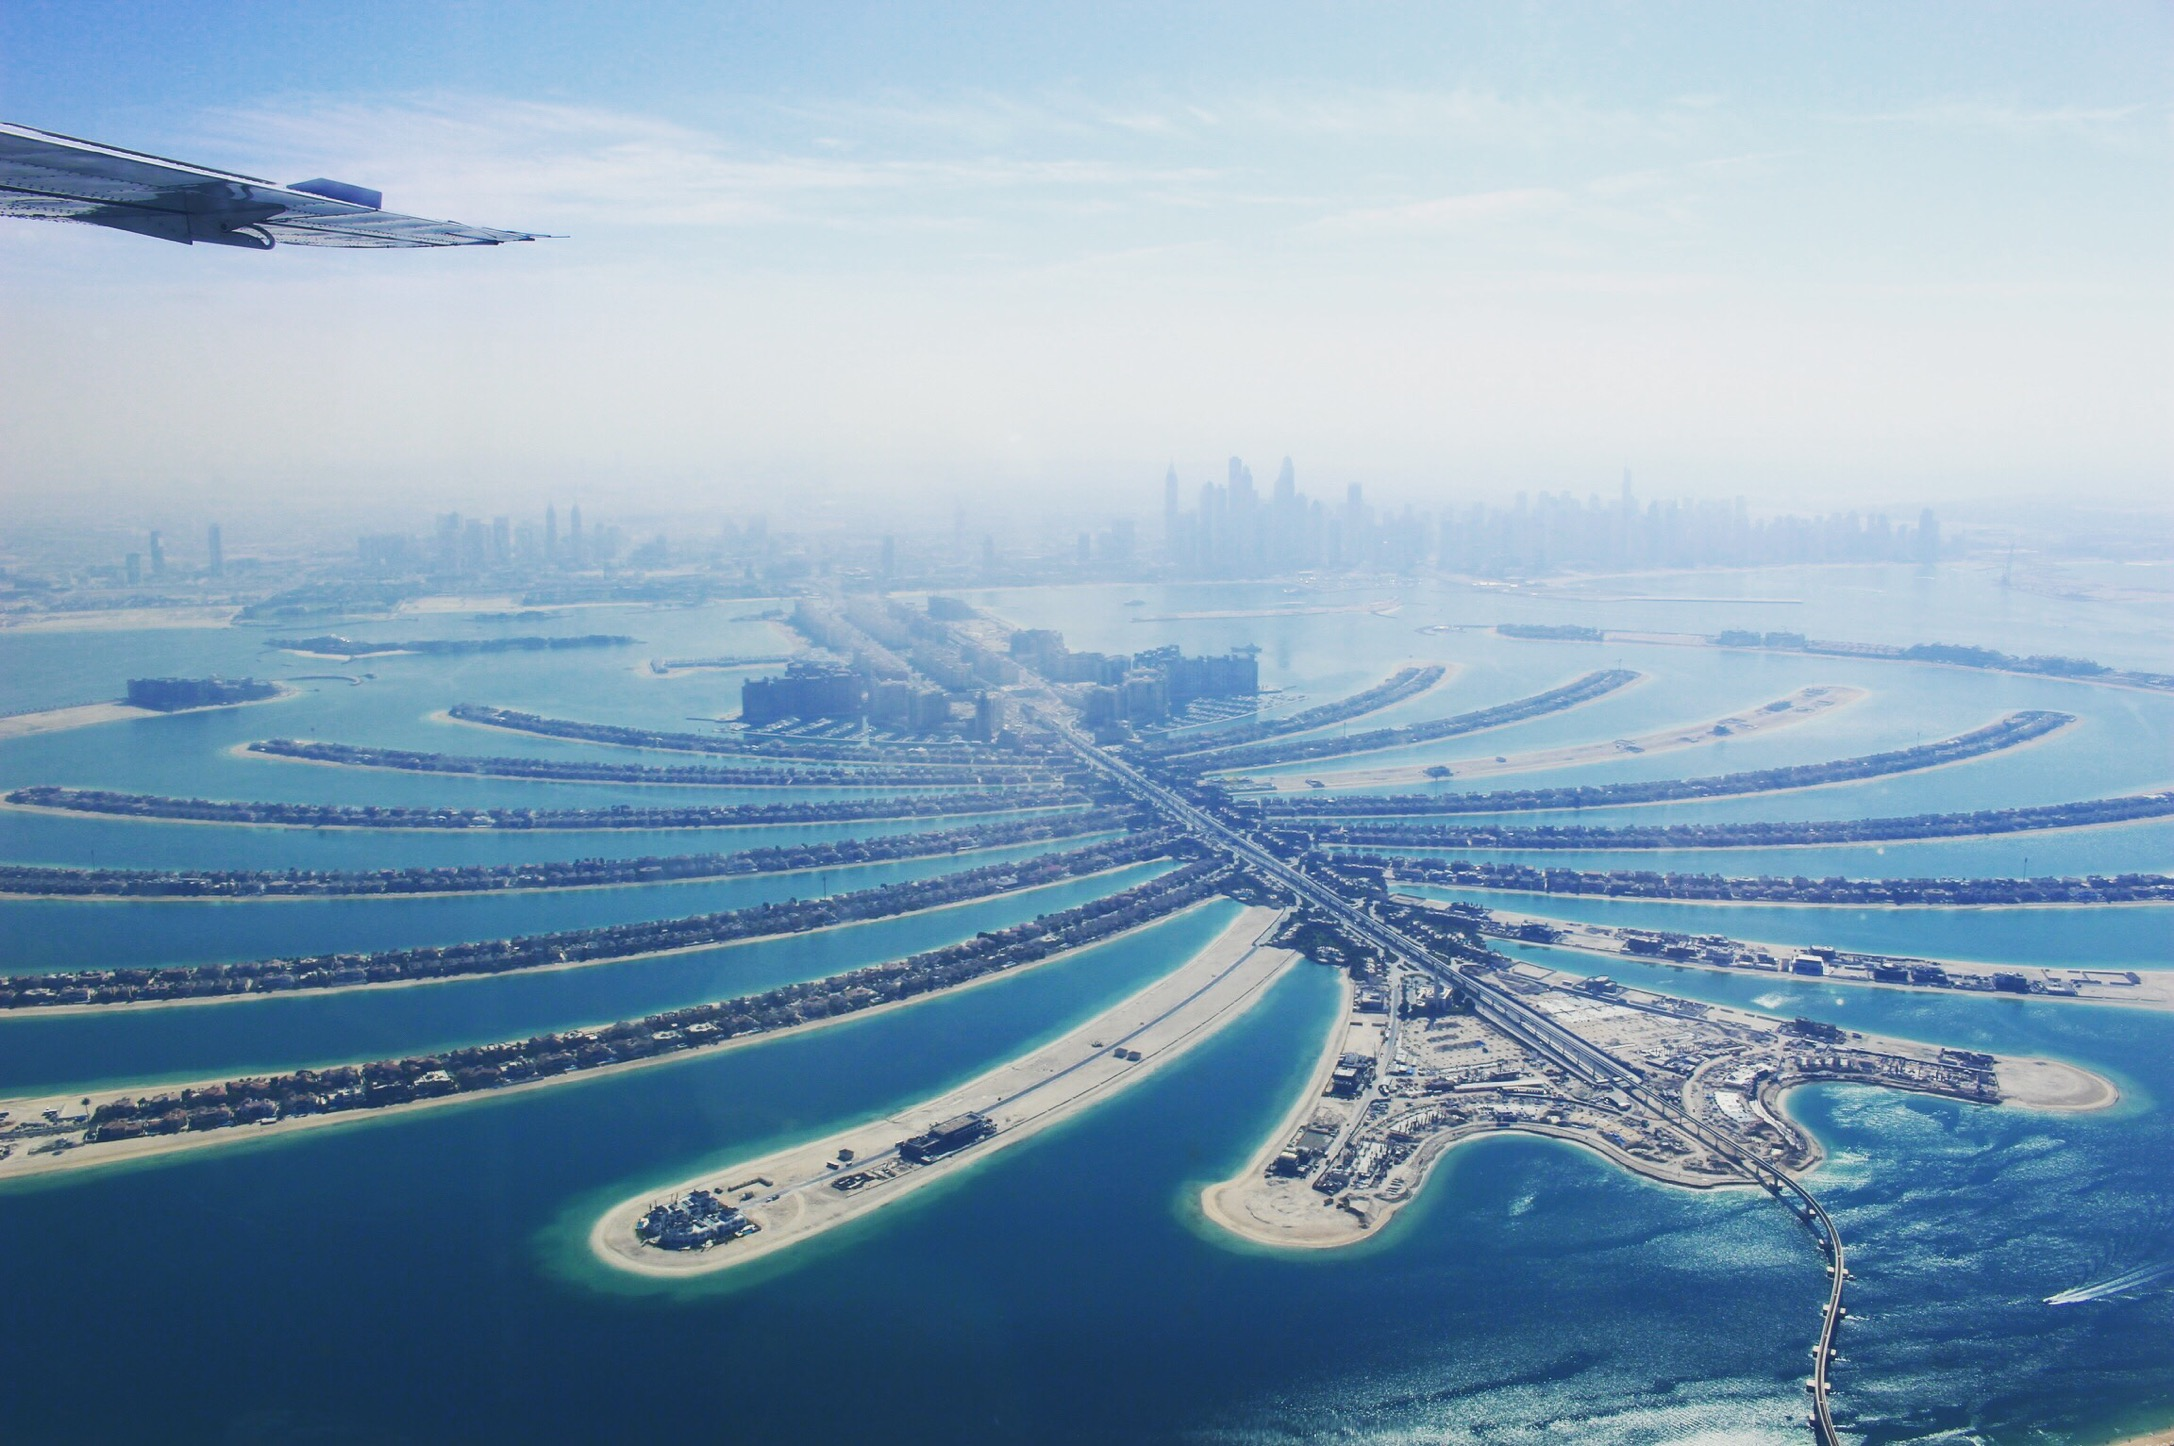 Dubai from the Sky.JPG